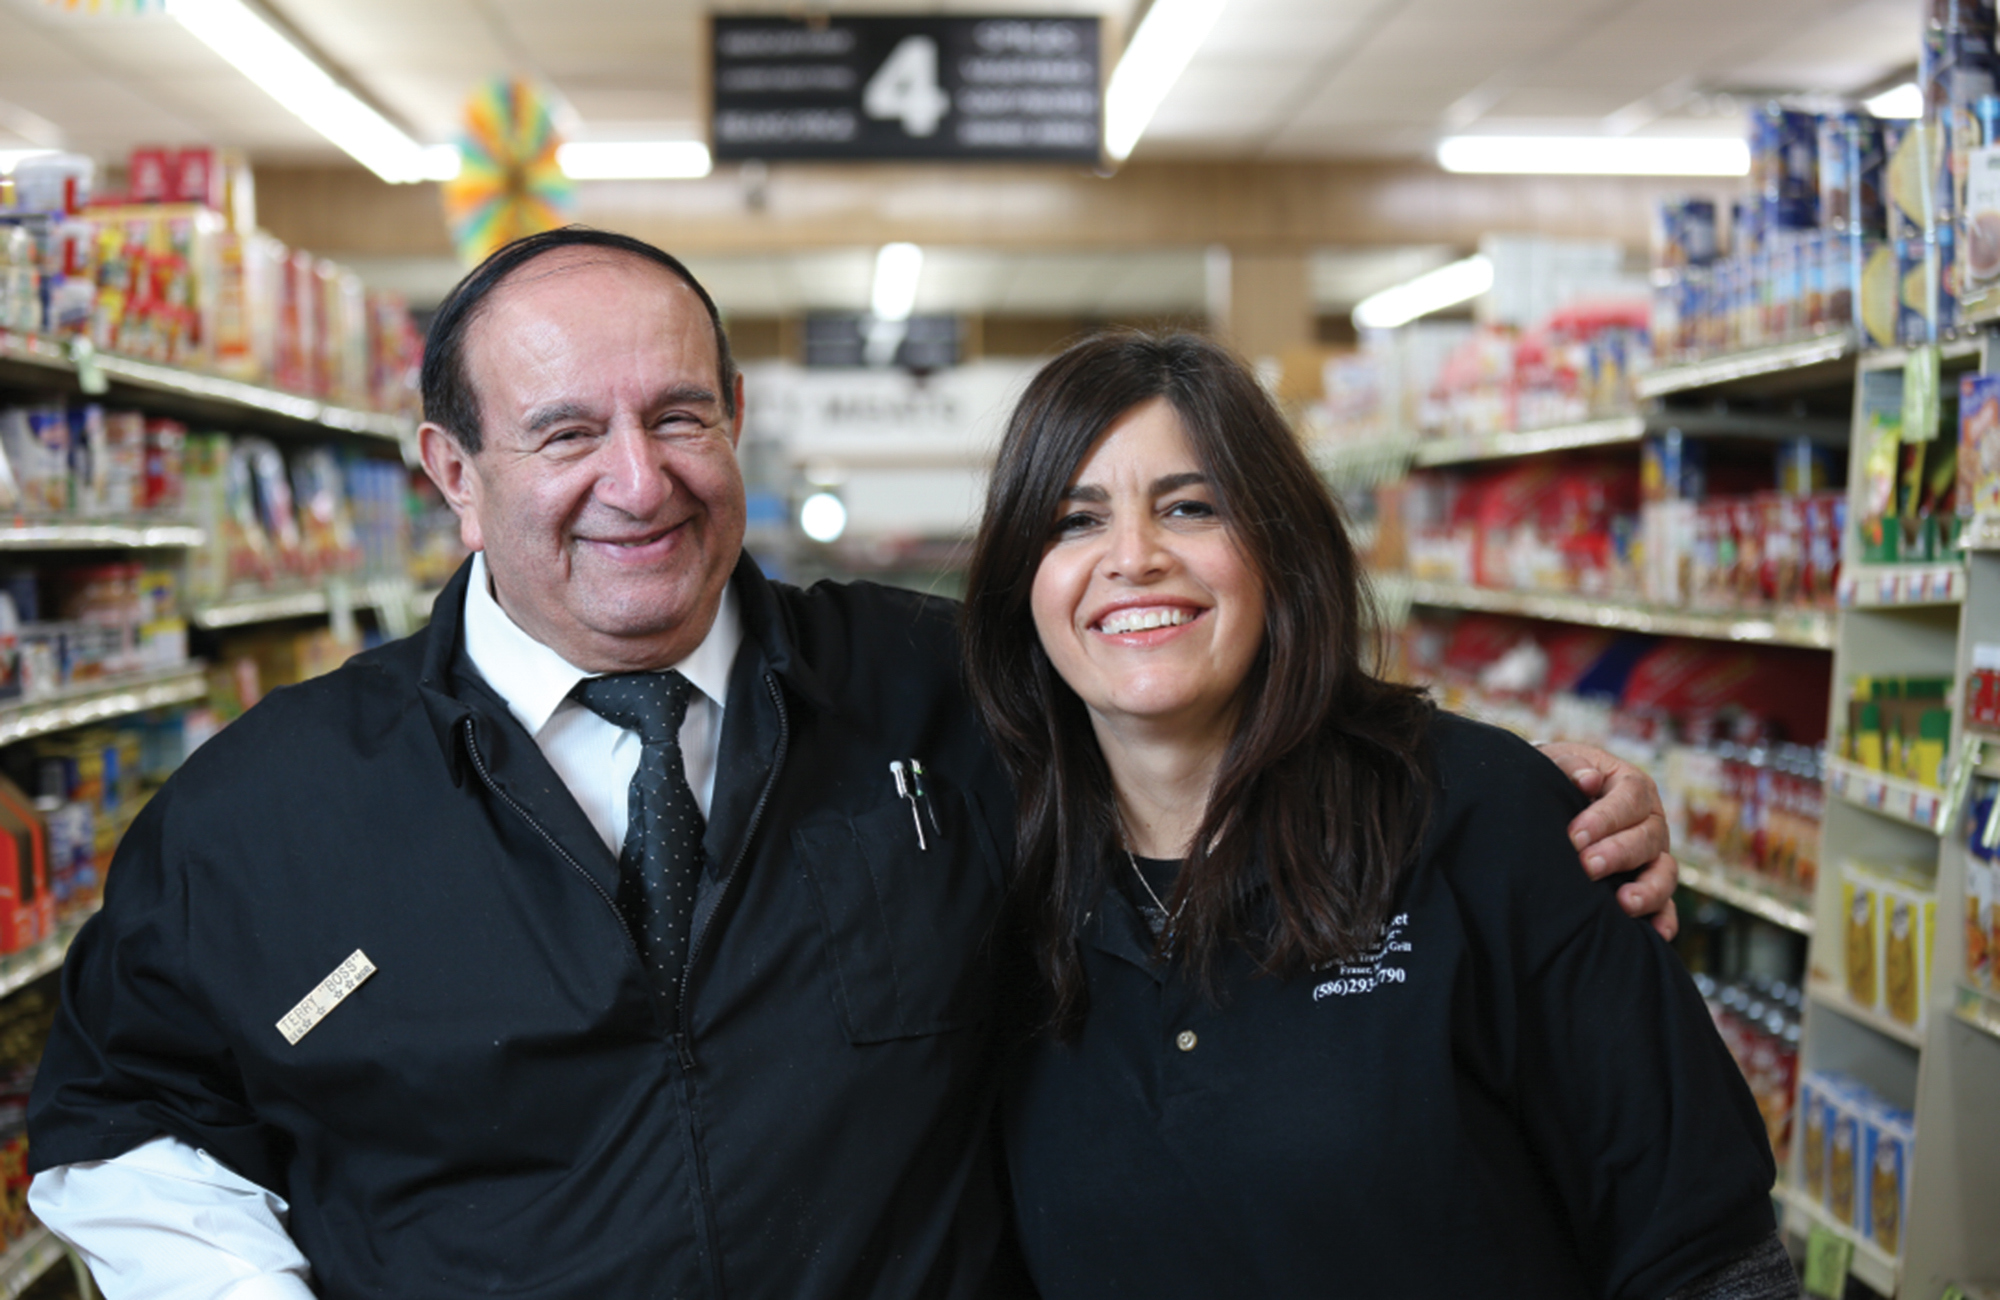 Terry Dehko and his daughter Sandy Thomas, the owners of Schott's Supermarket.